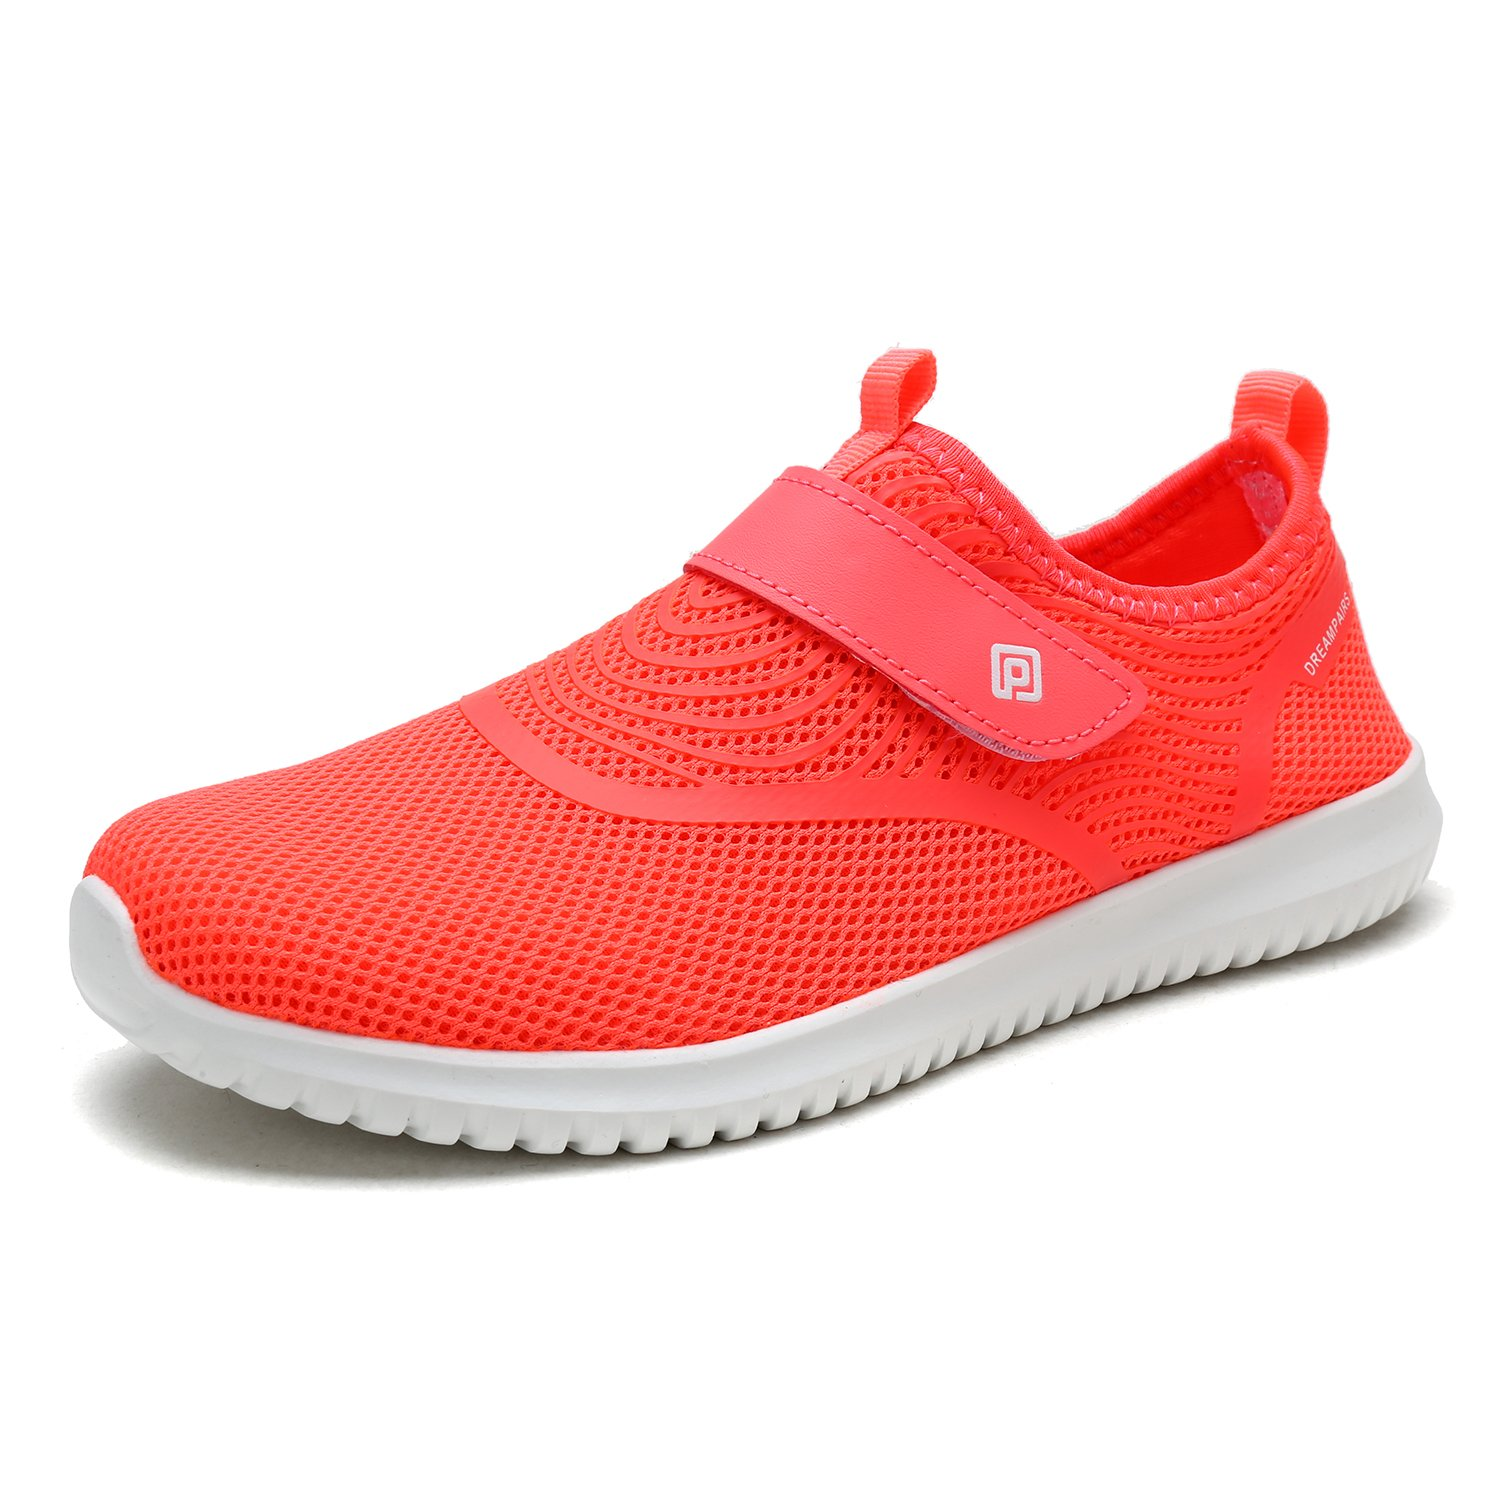 DREAM PAIRS Women's C0210_W Coral Fashion Athletic Water Shoes Sneakers Size 8 M US